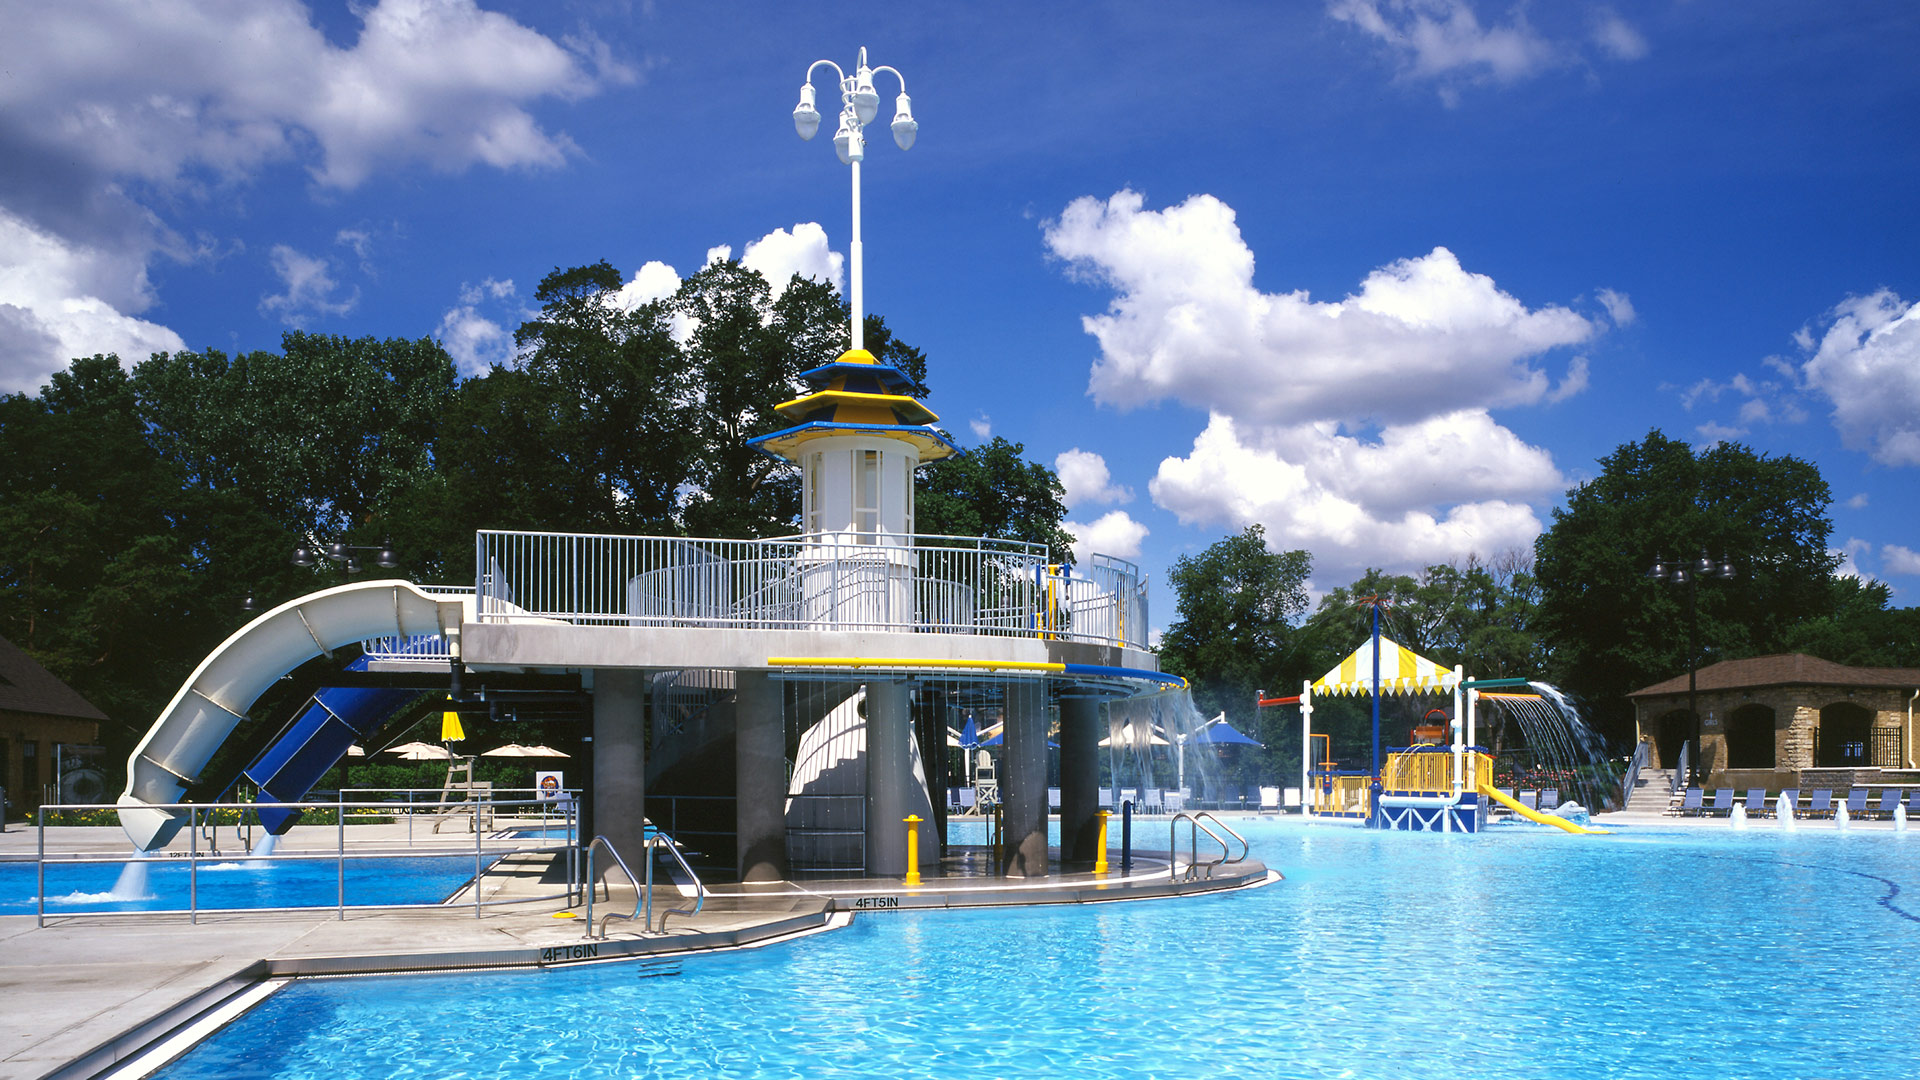 Glenview Park District Roosevelt Aquatic Center